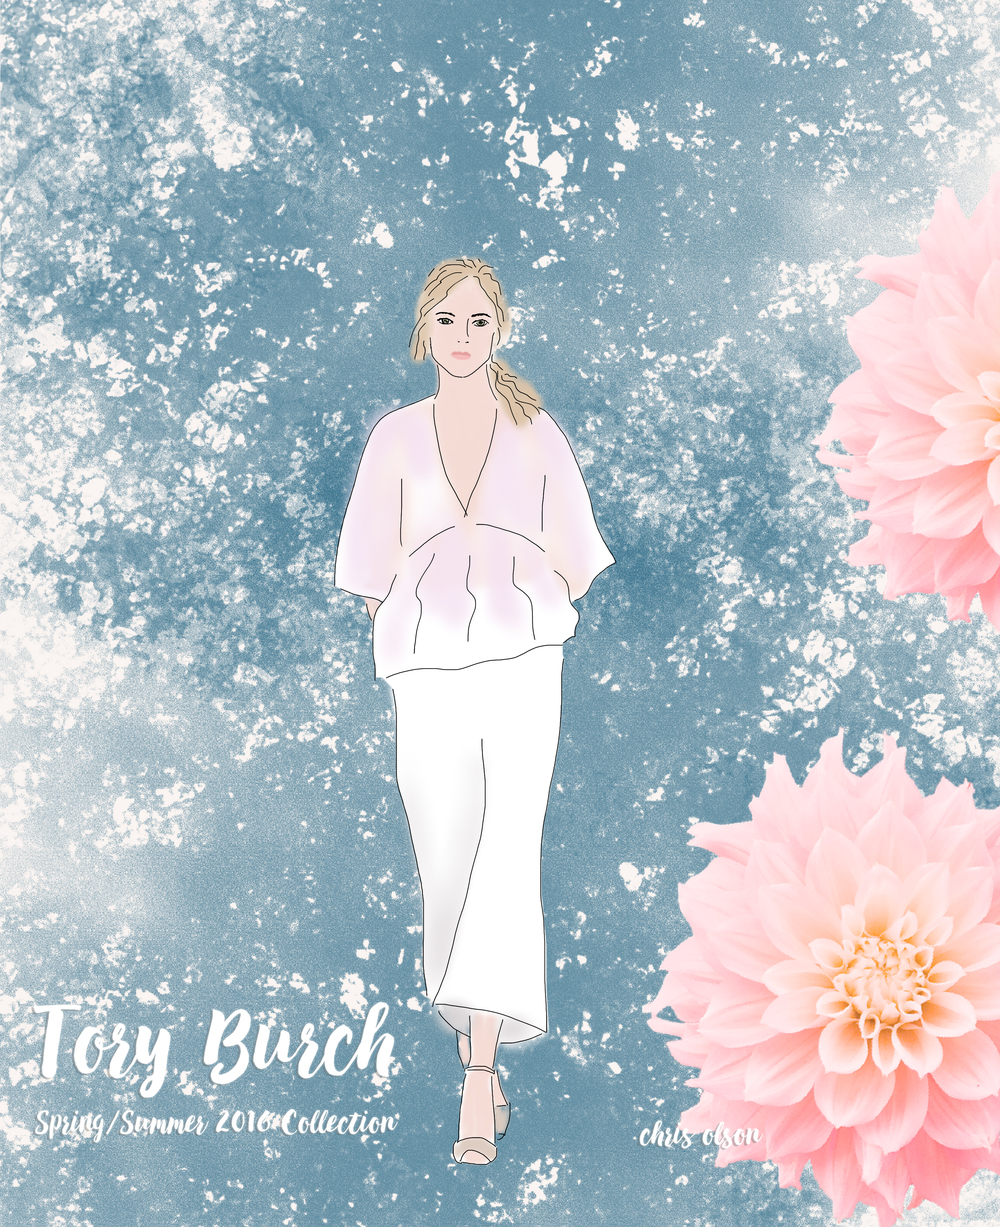 Iridescent fabrics on the Tory Burch SS16 show at NYFW. Art by Chris Olson